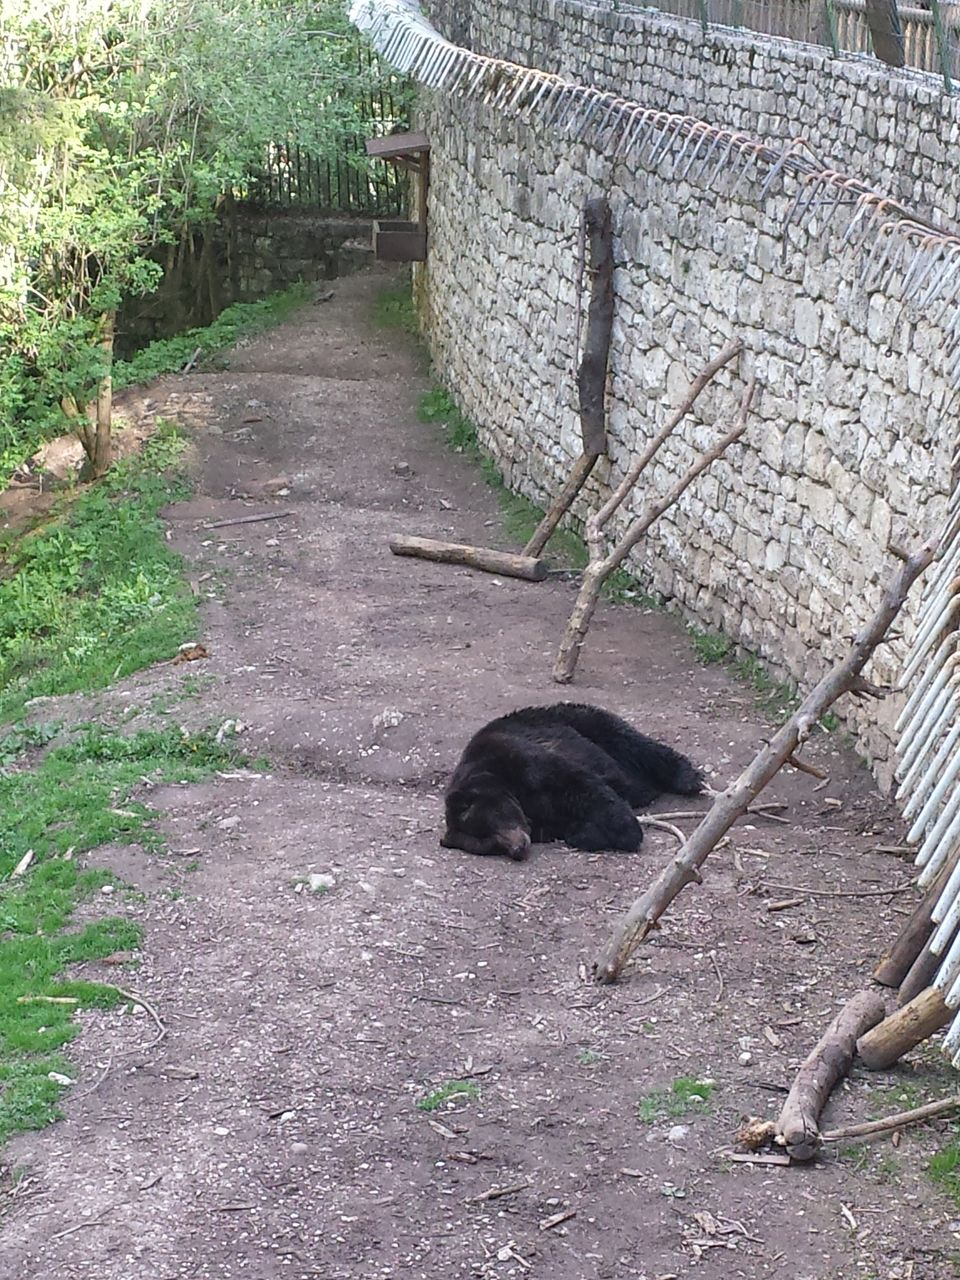 animal themes, one animal, domestic animals, mammal, outdoors, pets, day, no people, domestic cat, grass, nature